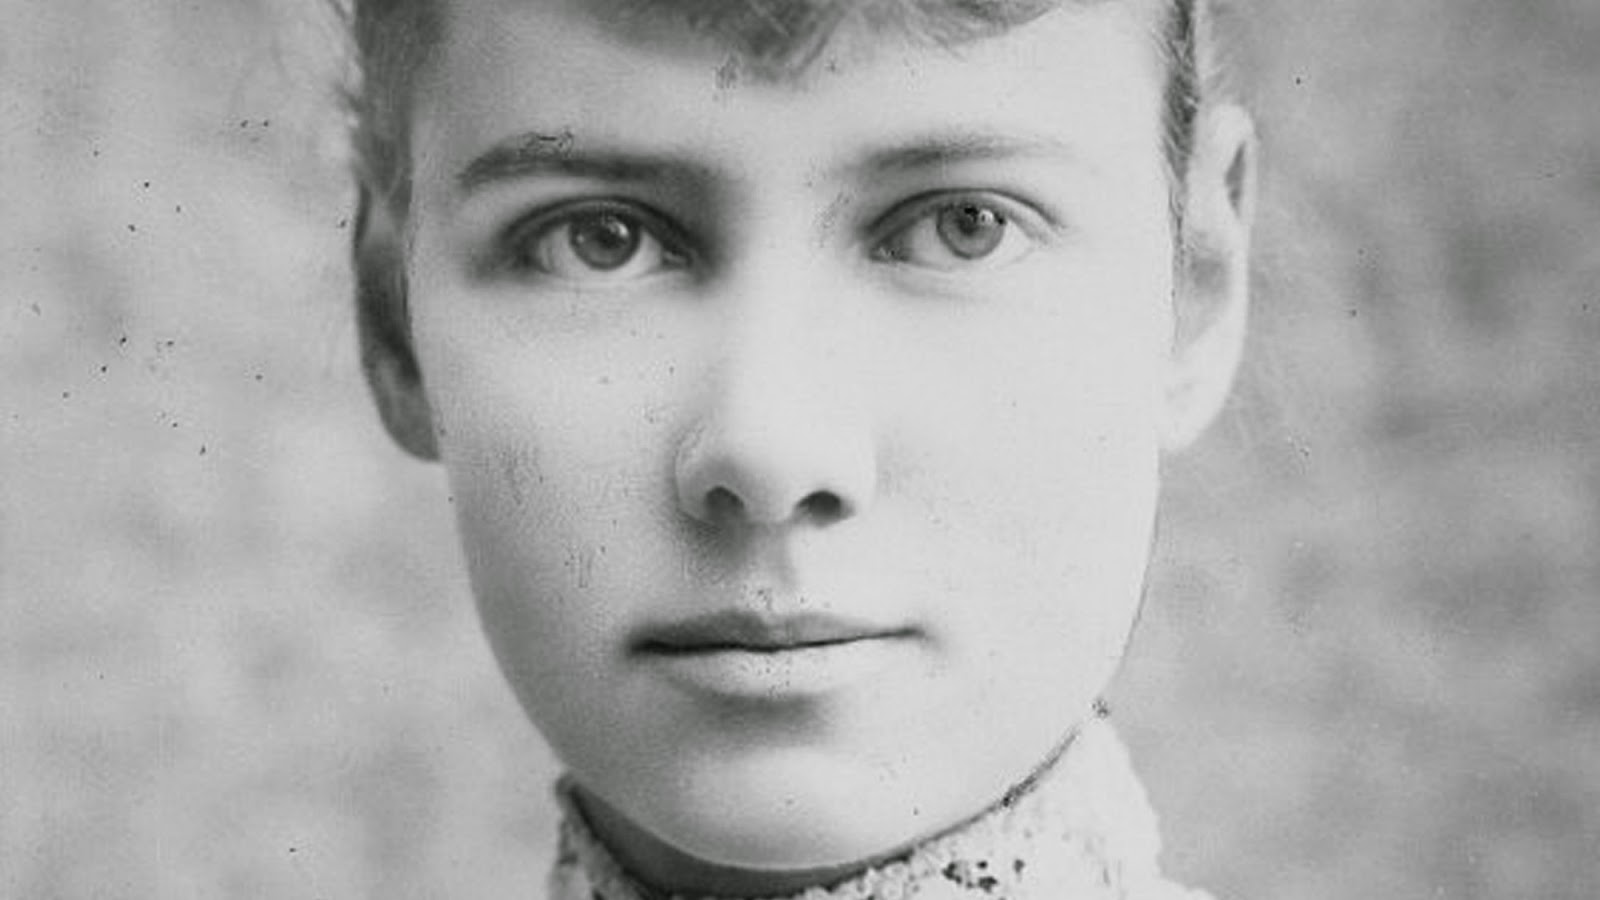 antithesis arguements for nellie bly Ten days in a madhouse nellie bly was a journalist who investigated the blackwell's island insane asylum by pretending to be insane.